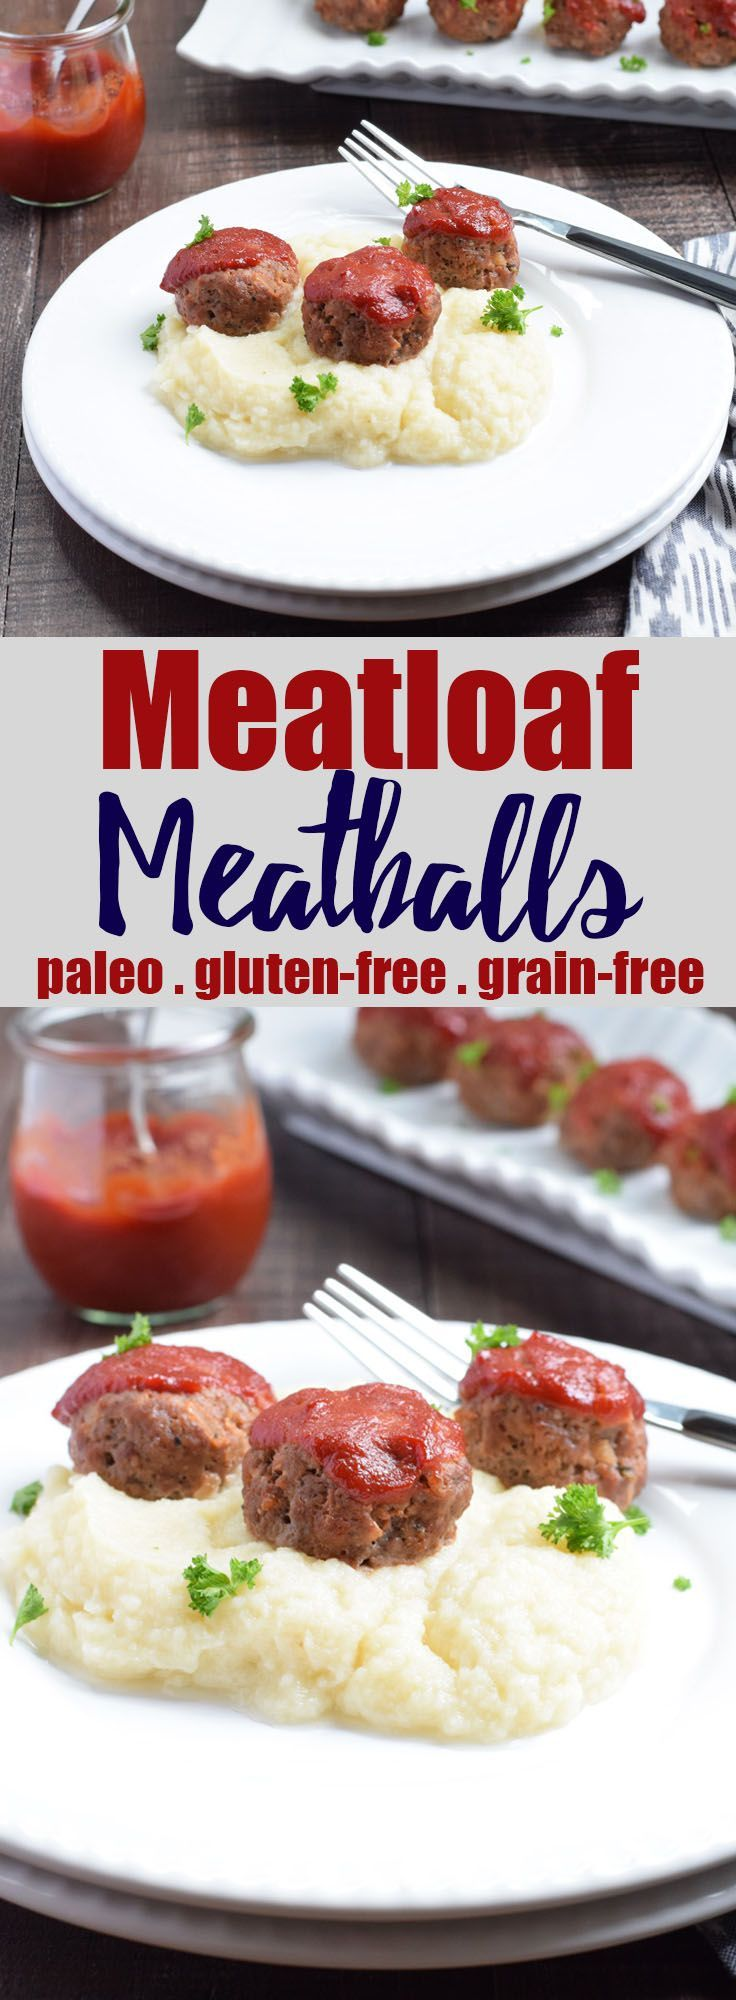 Meatloaf Meatballs from Living Loving Paleo | paleo, gluten-free, grain-free & easy to make Whole30 compliant! | An exclusive Invincible Inspiration member's recipe